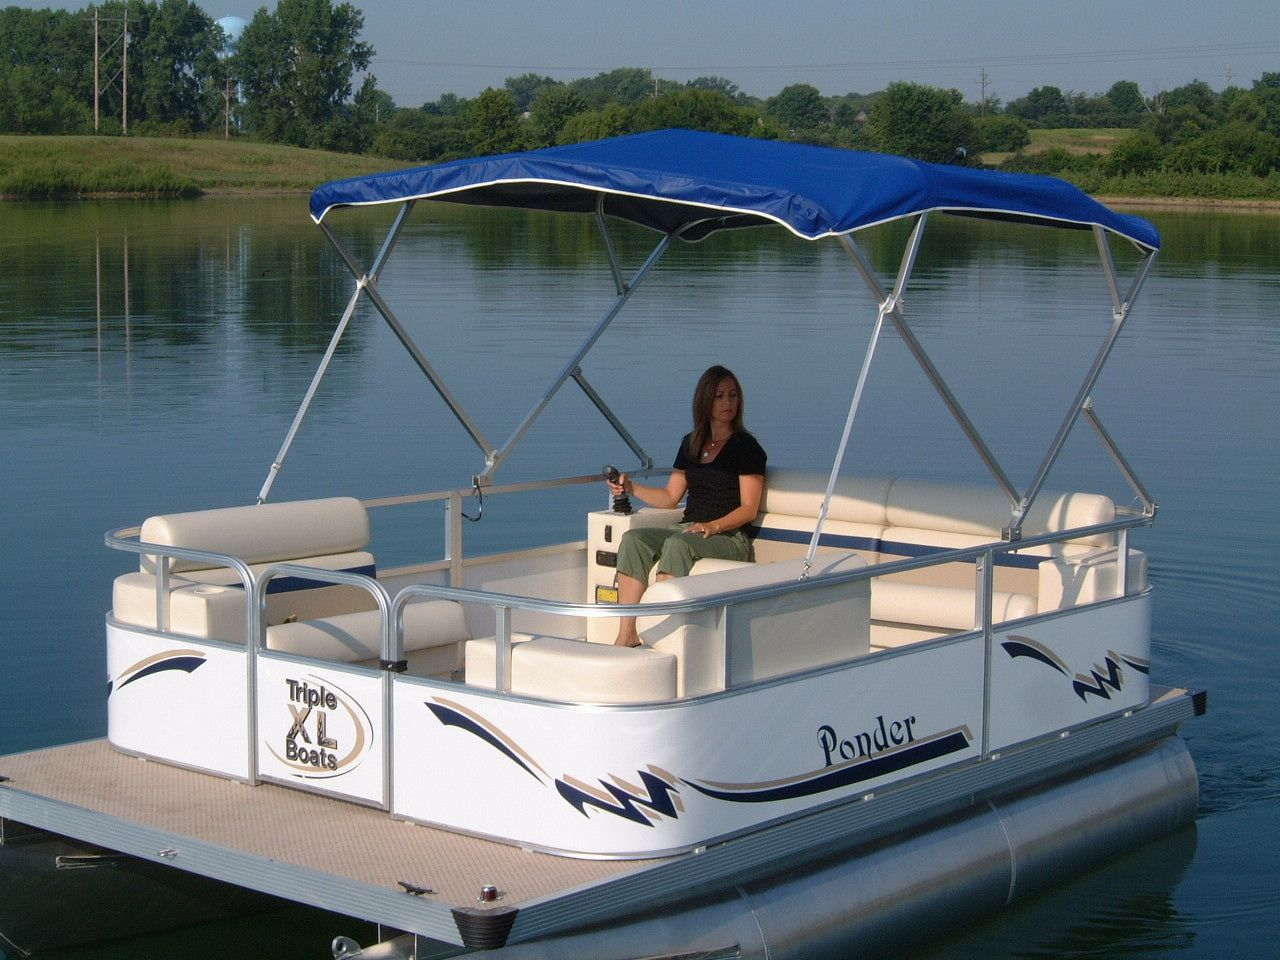 builders manufacturing dealers bentley boats encore today you boat a quality pontoon near dealer